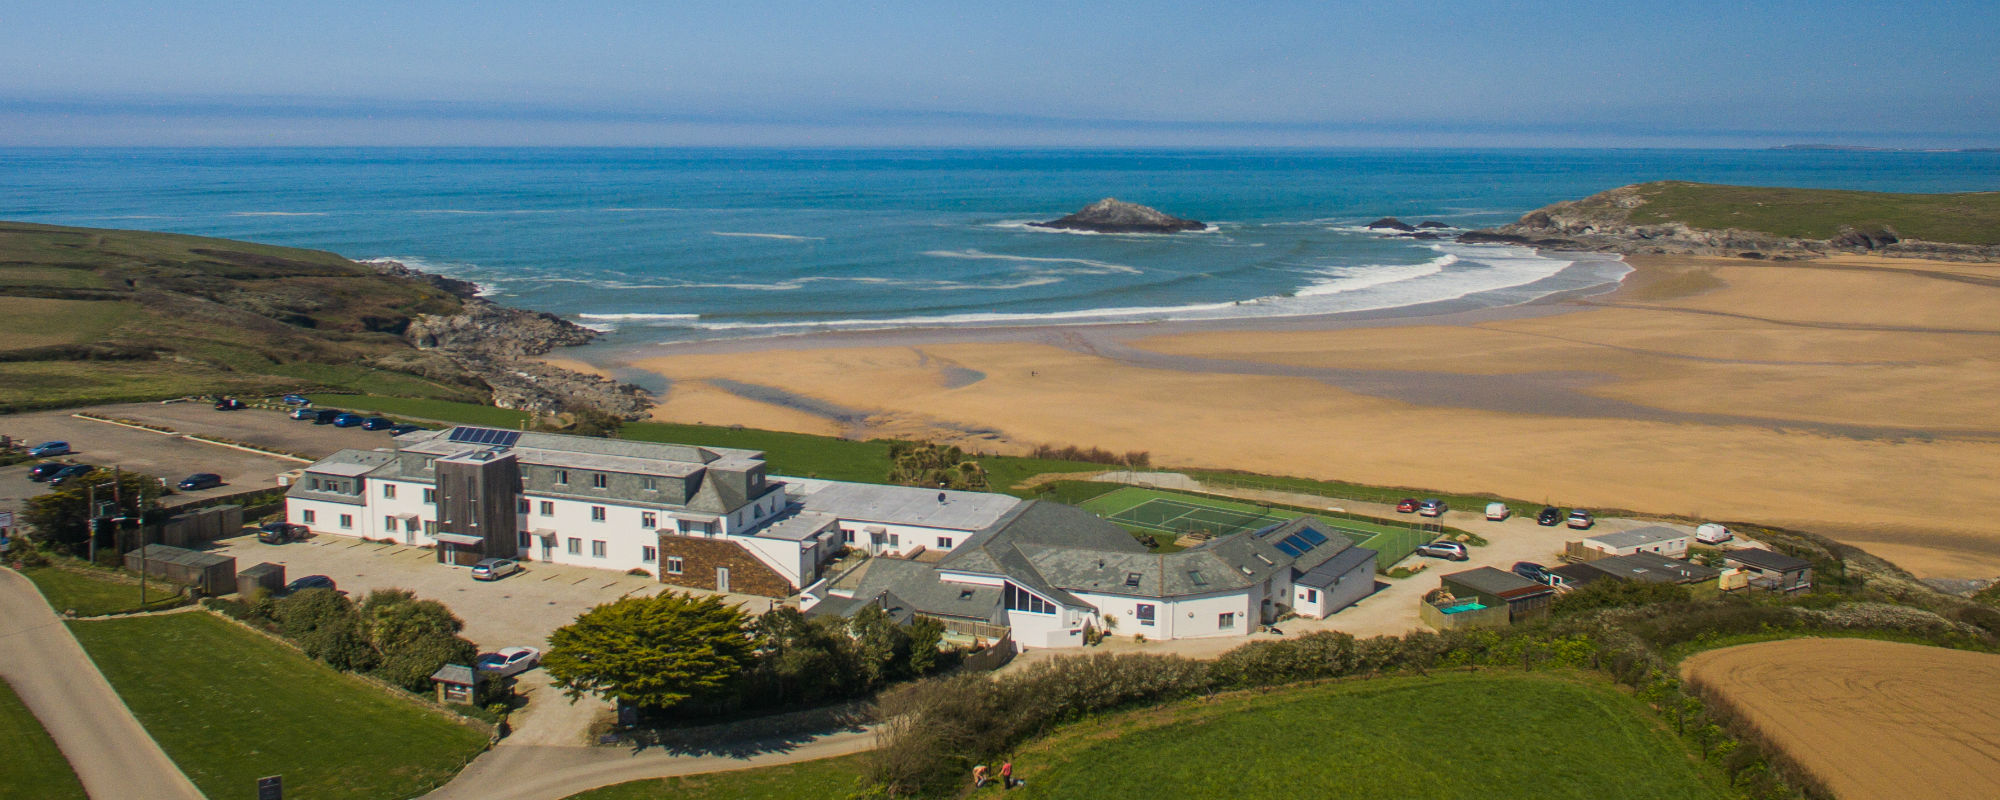 Crantock Bay Apartments - Welcome to Crantock Bay